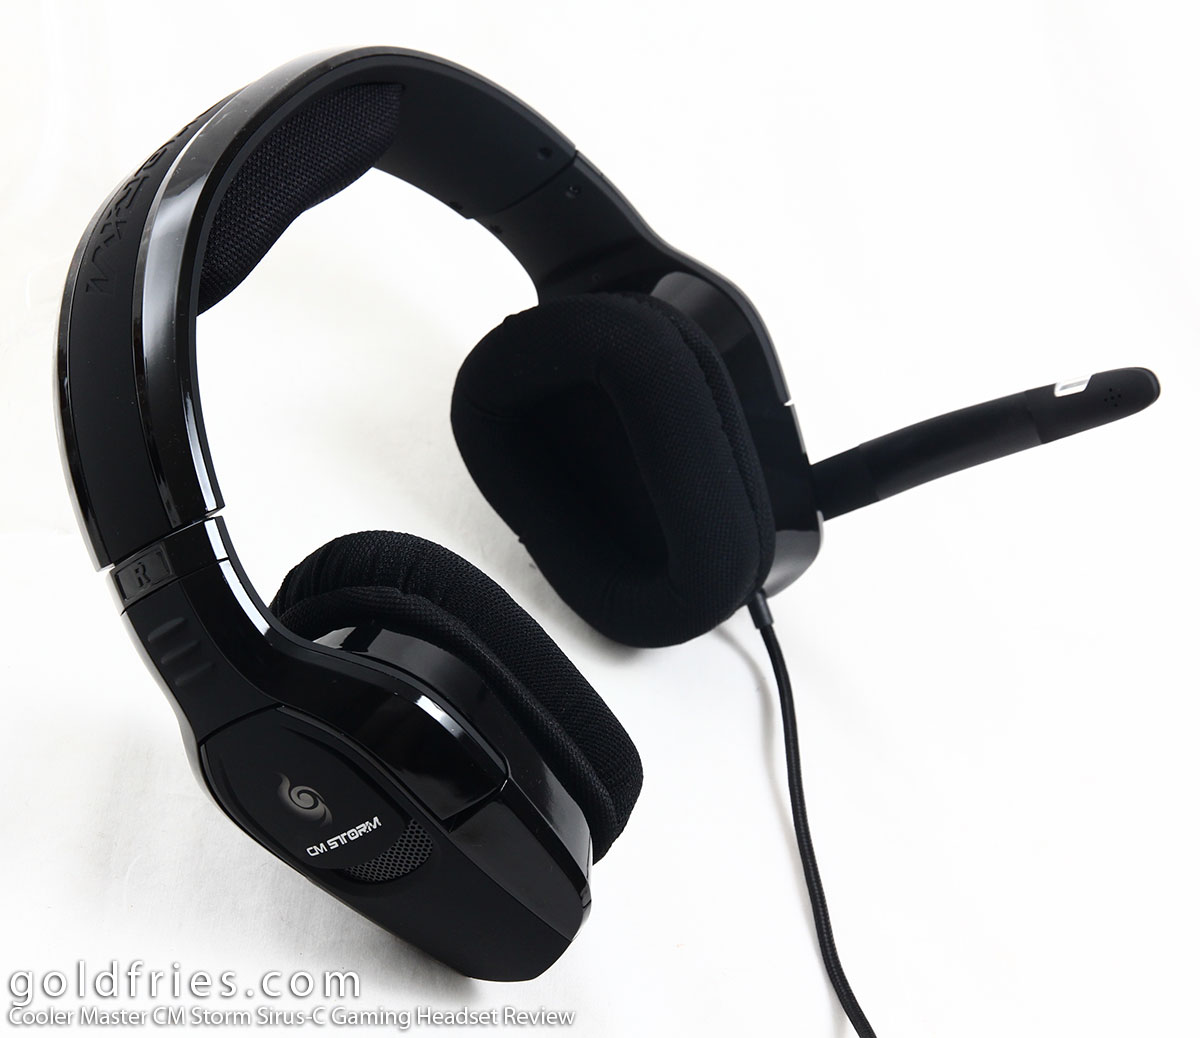 Cooler Master CM Storm Sirus-C Gaming Headset Review